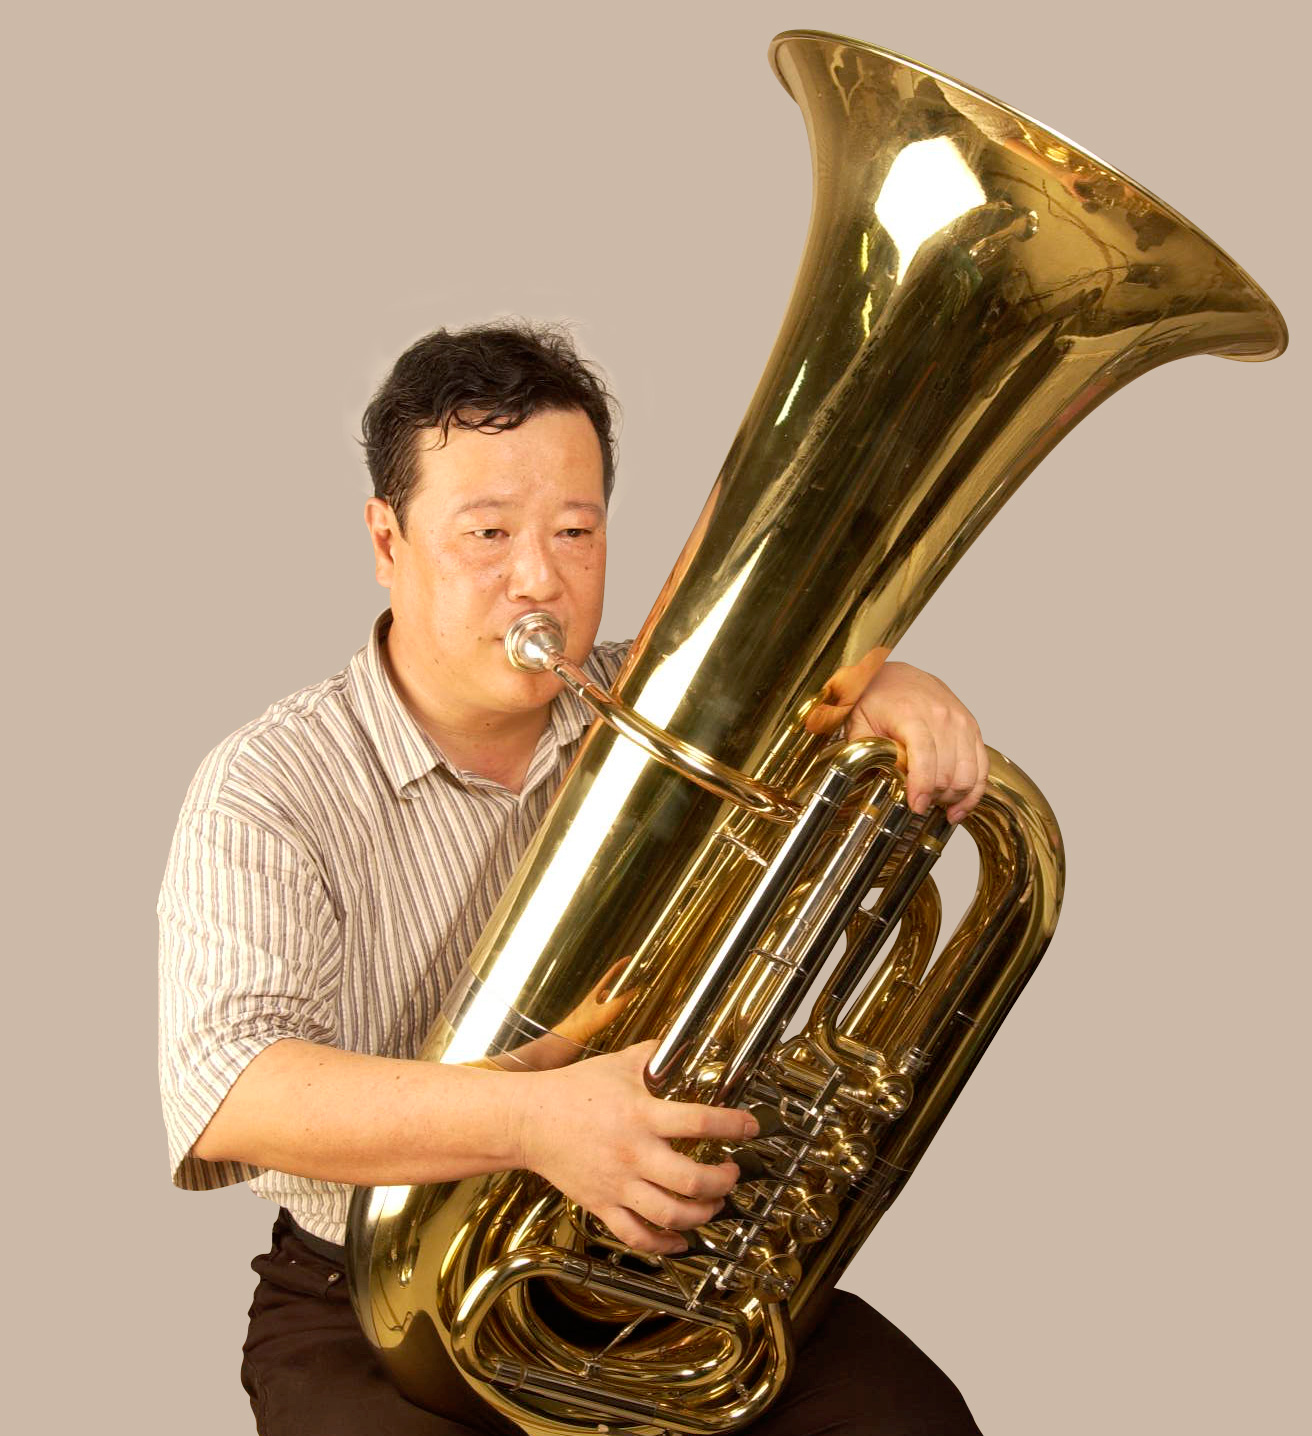 Rotary-valved tubas have the bell on the player's left side